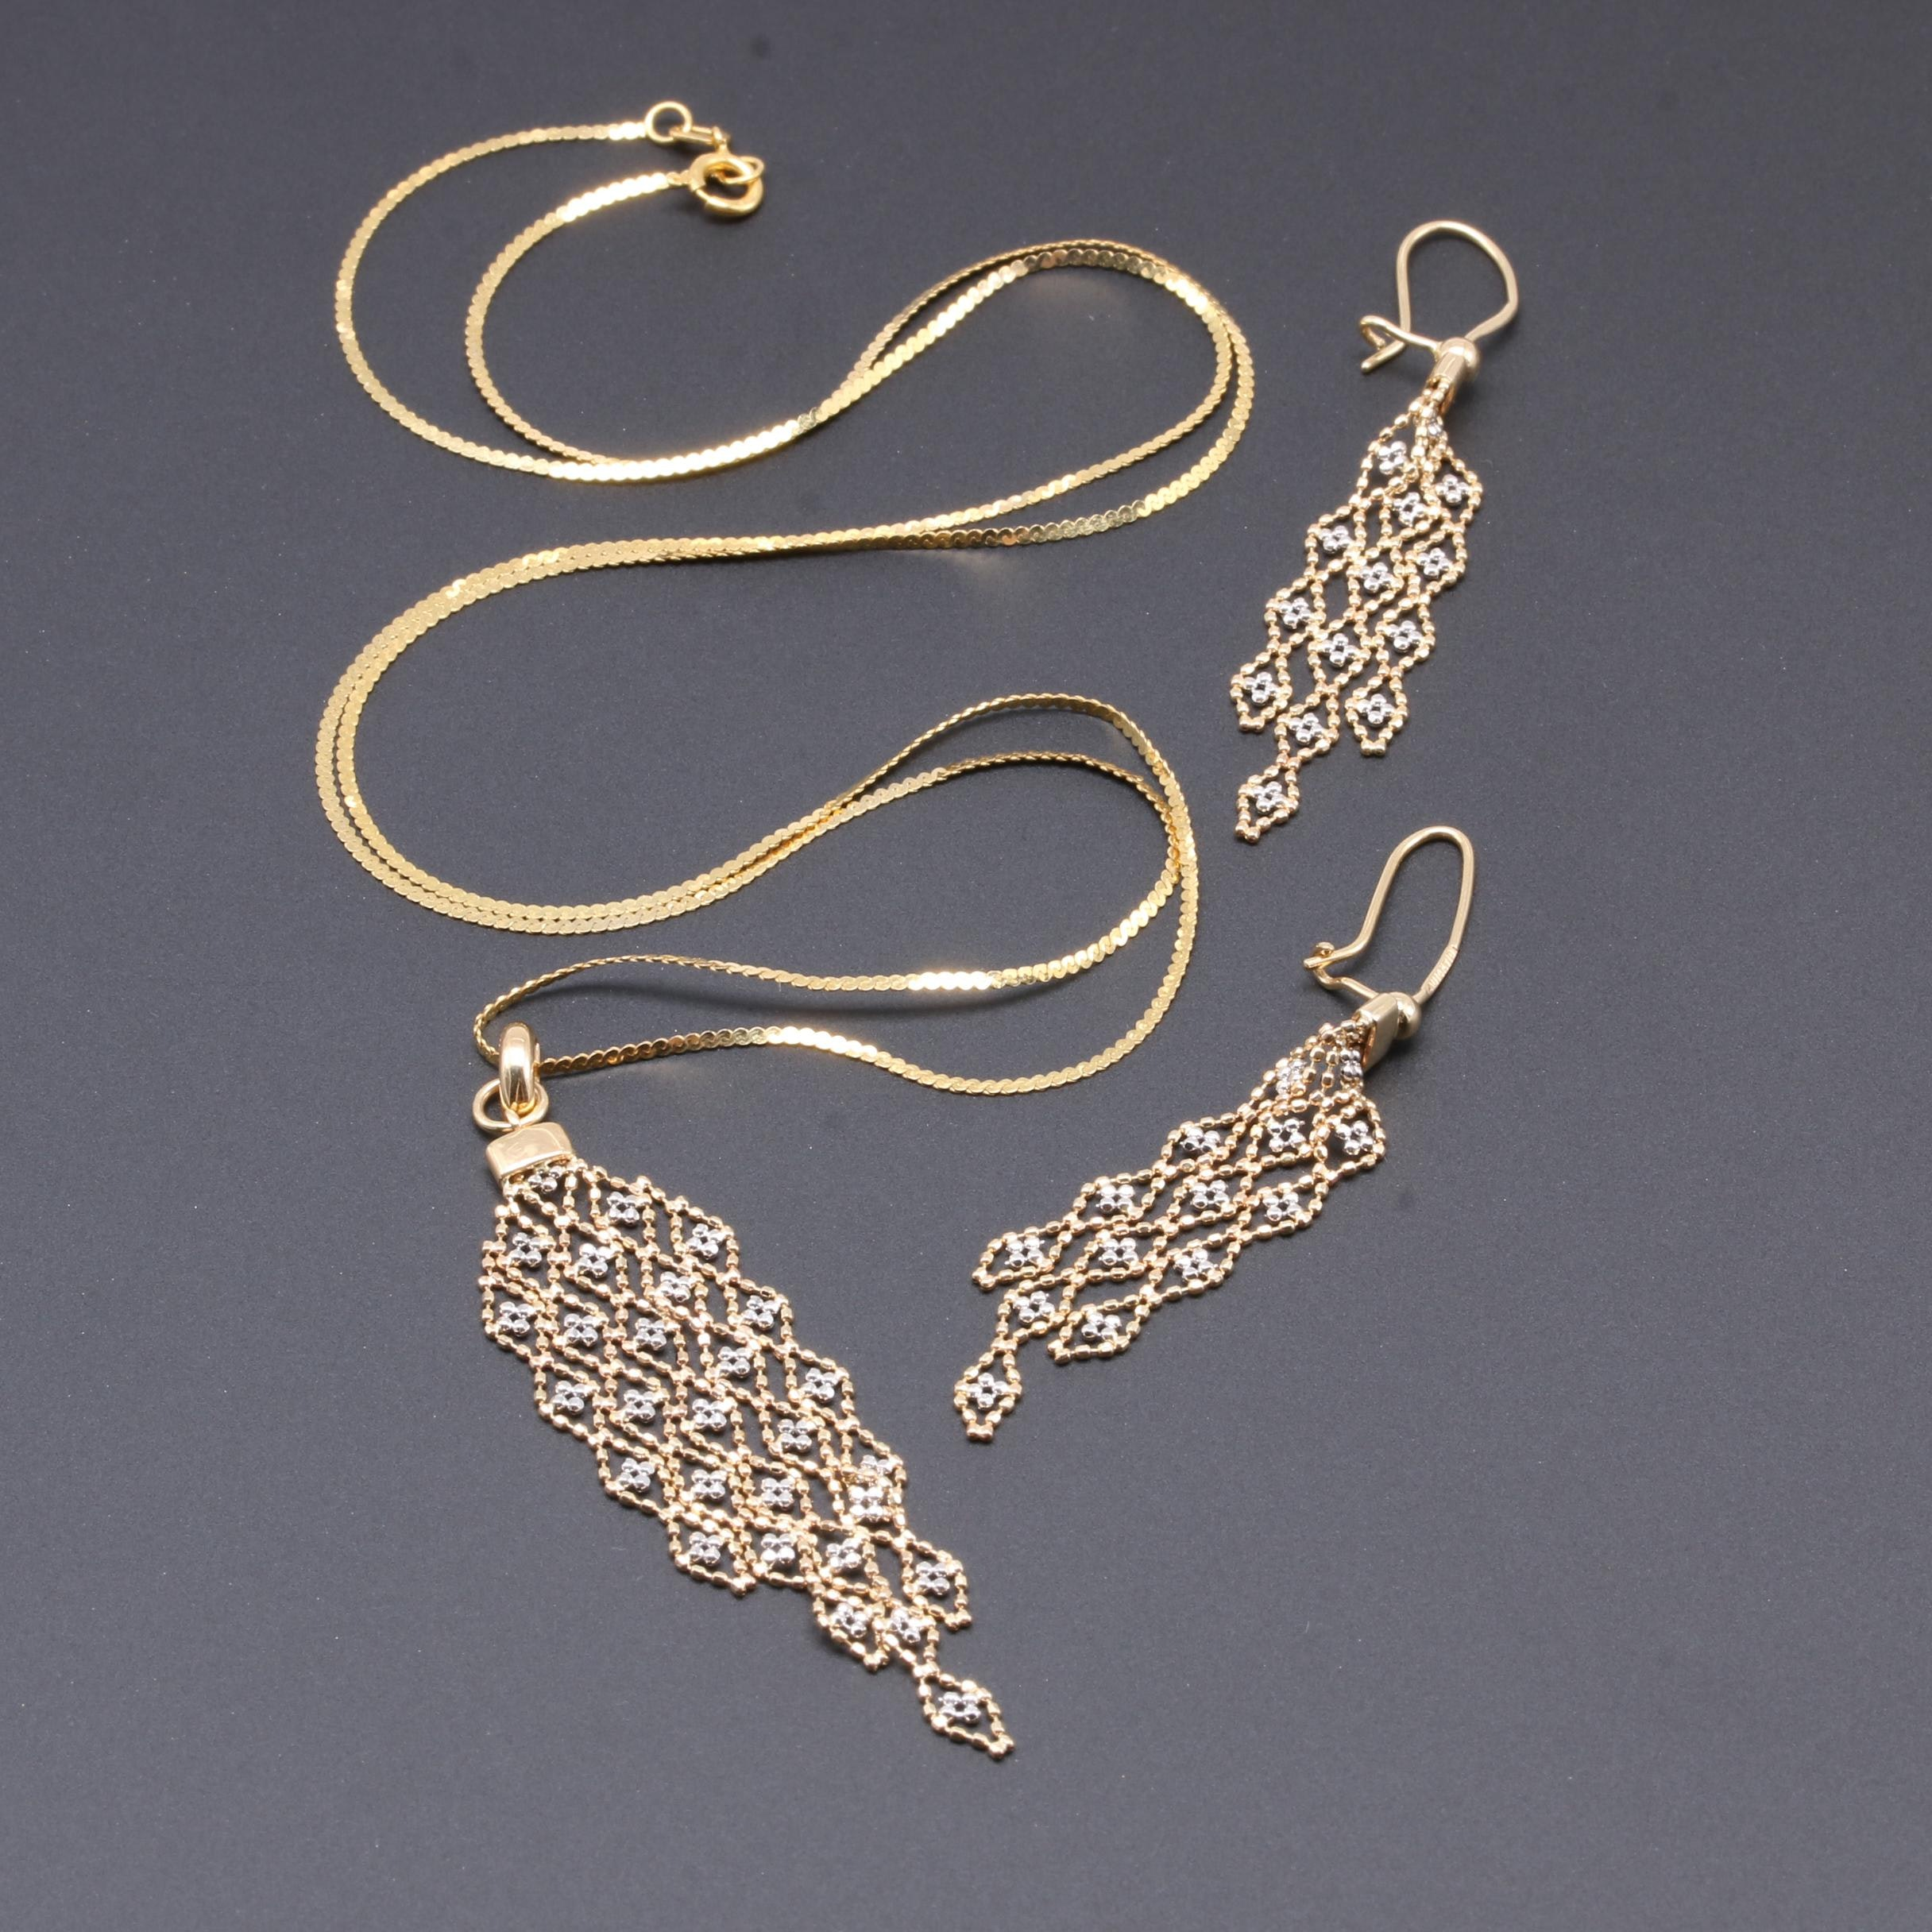 14K Yellow and White Gold Demi Parure with Mesh Accents